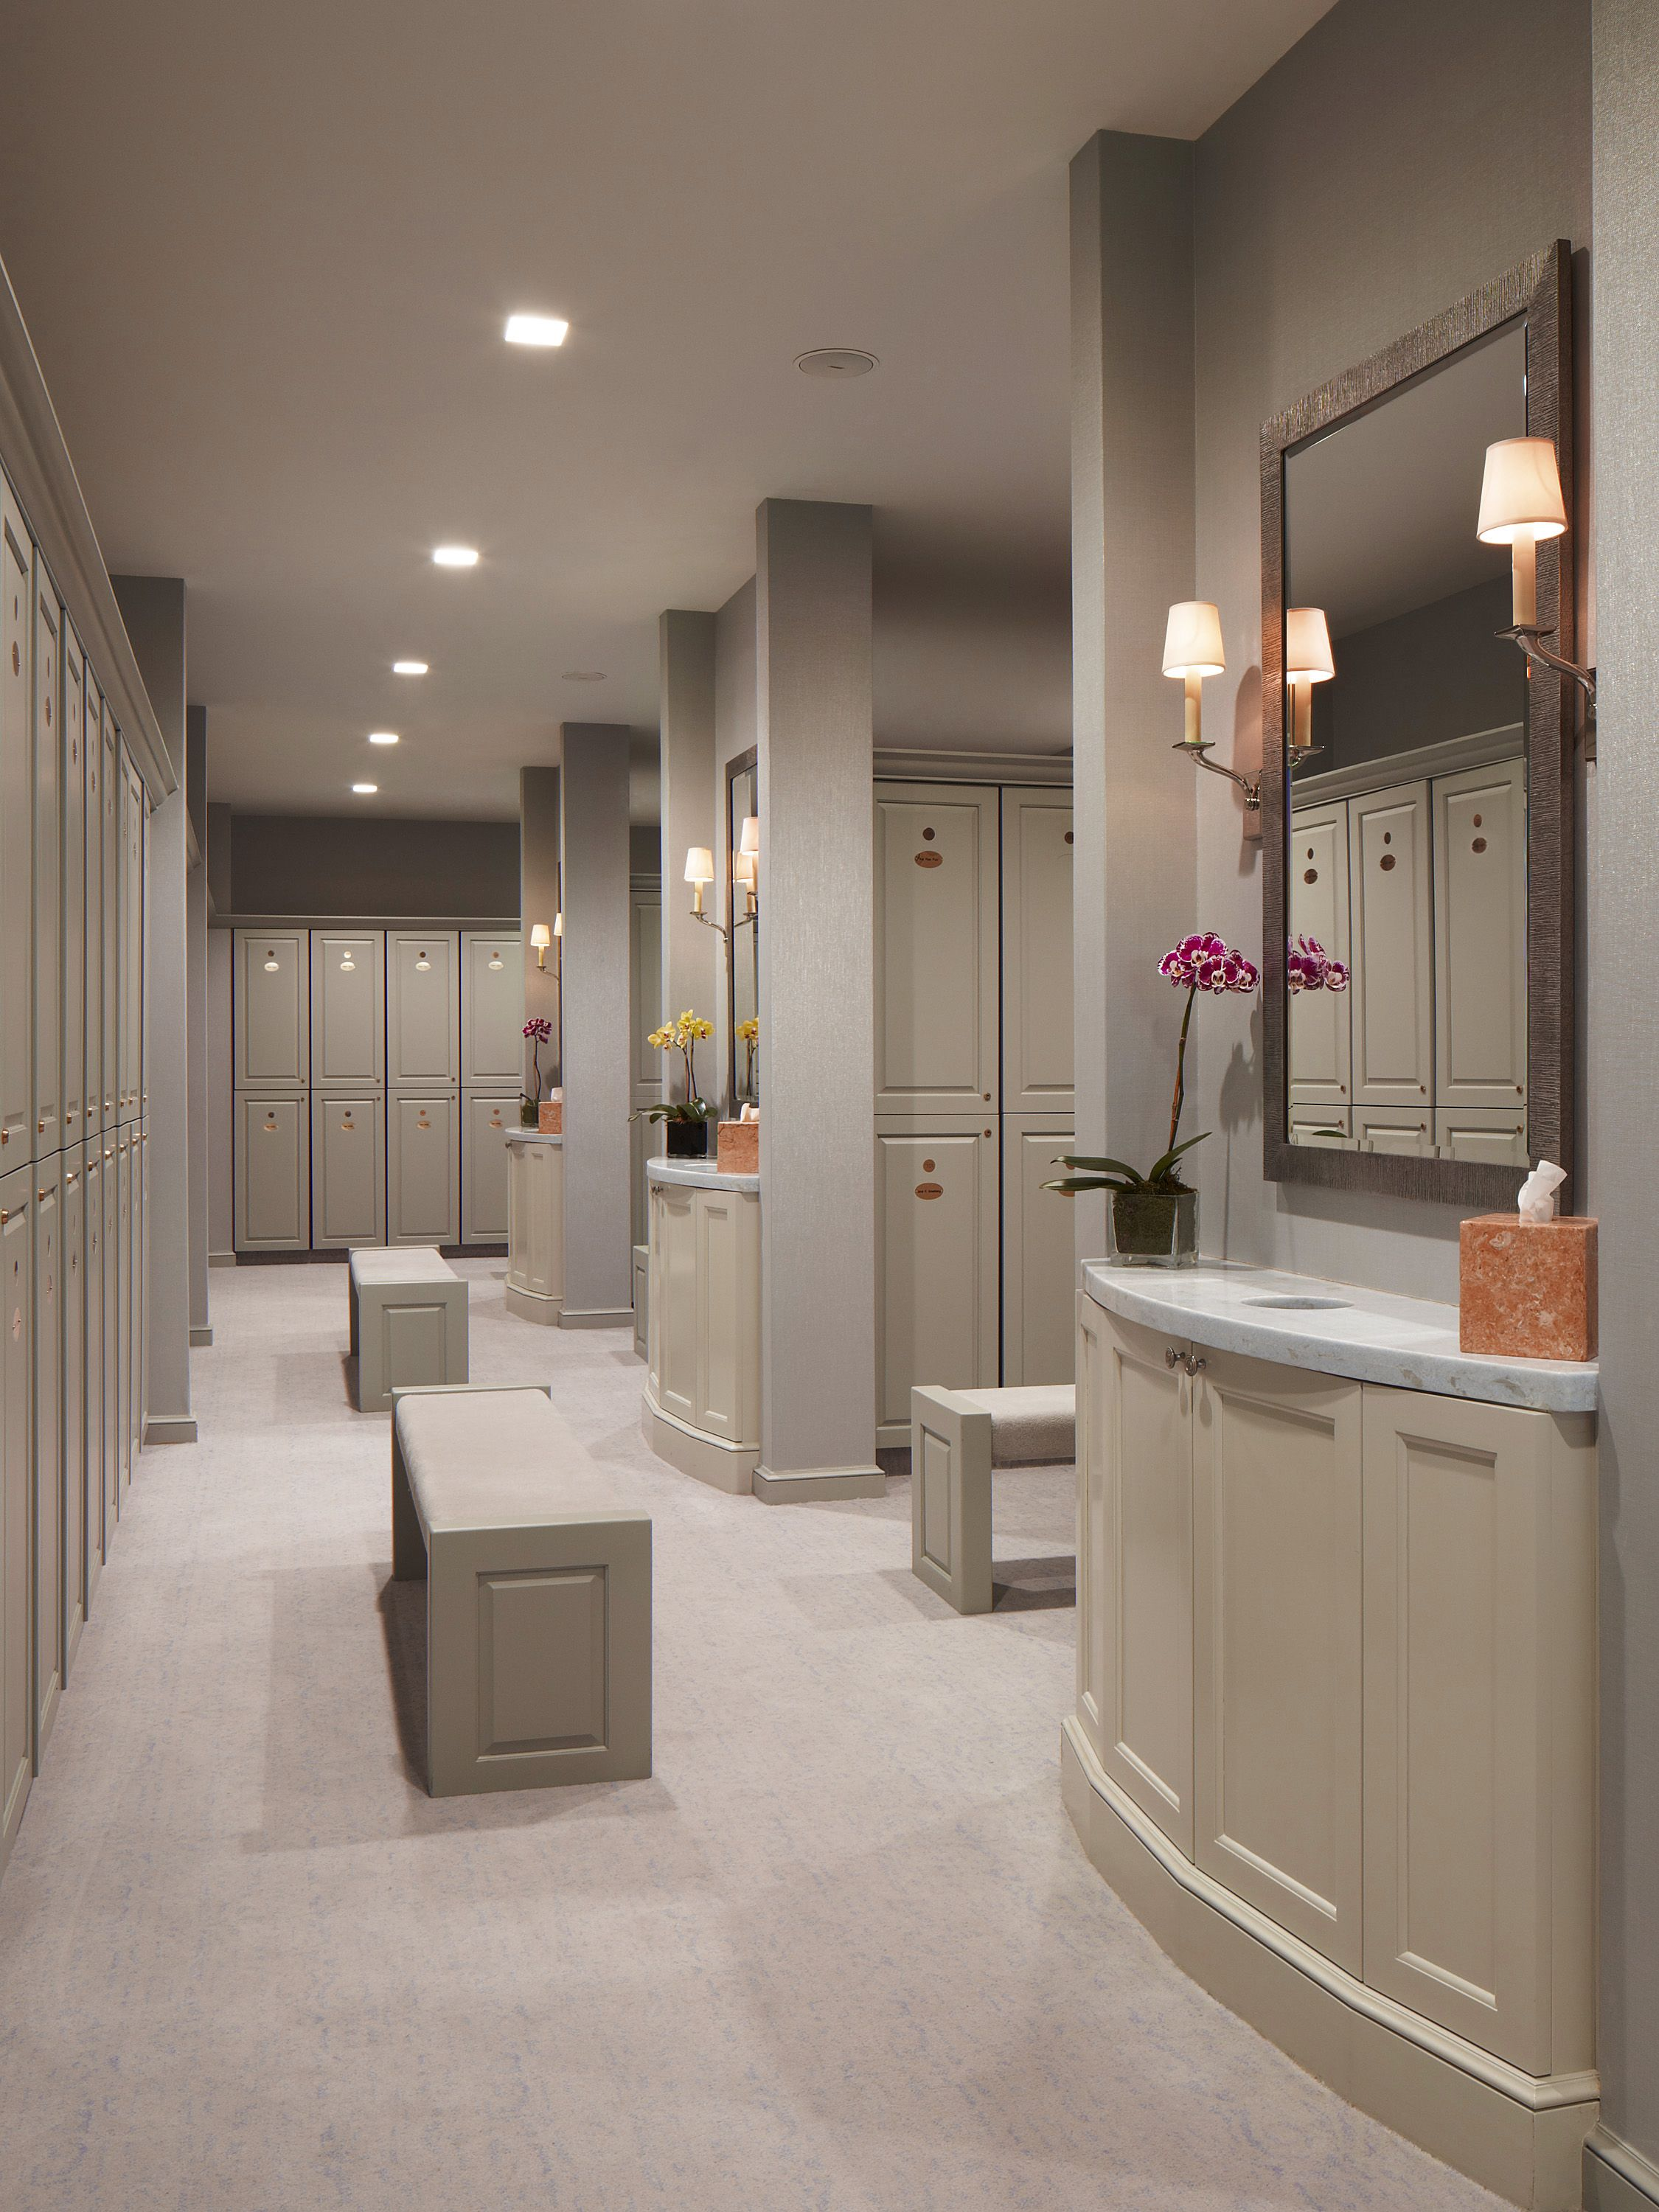 Locker room bathroom design - Hollman S Project Gallery Is A Collection Of Images From Some Of Our Favorite Projects Including Lockers Athletic Lockers And Courts